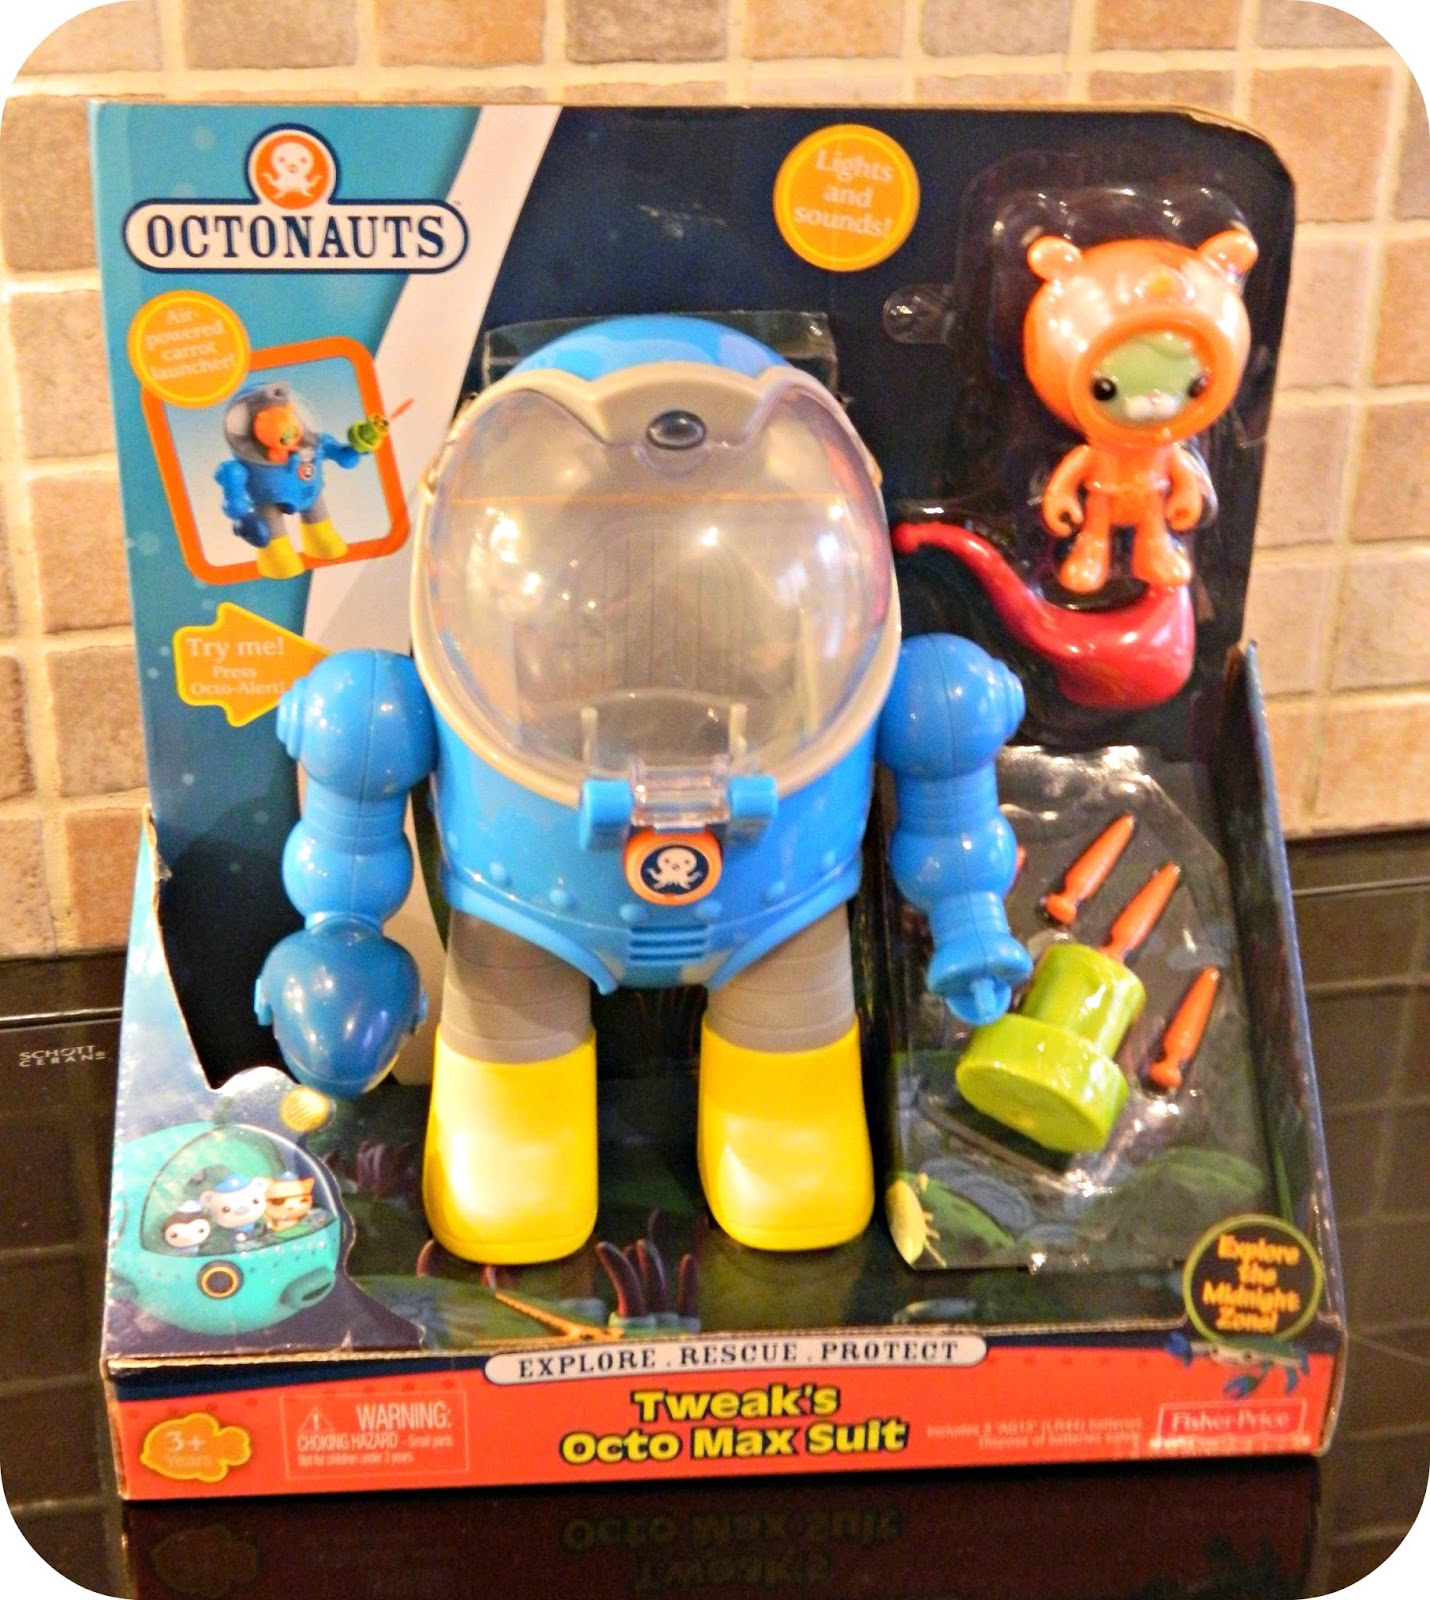 Octonauts Tweak's Octo Max Suit